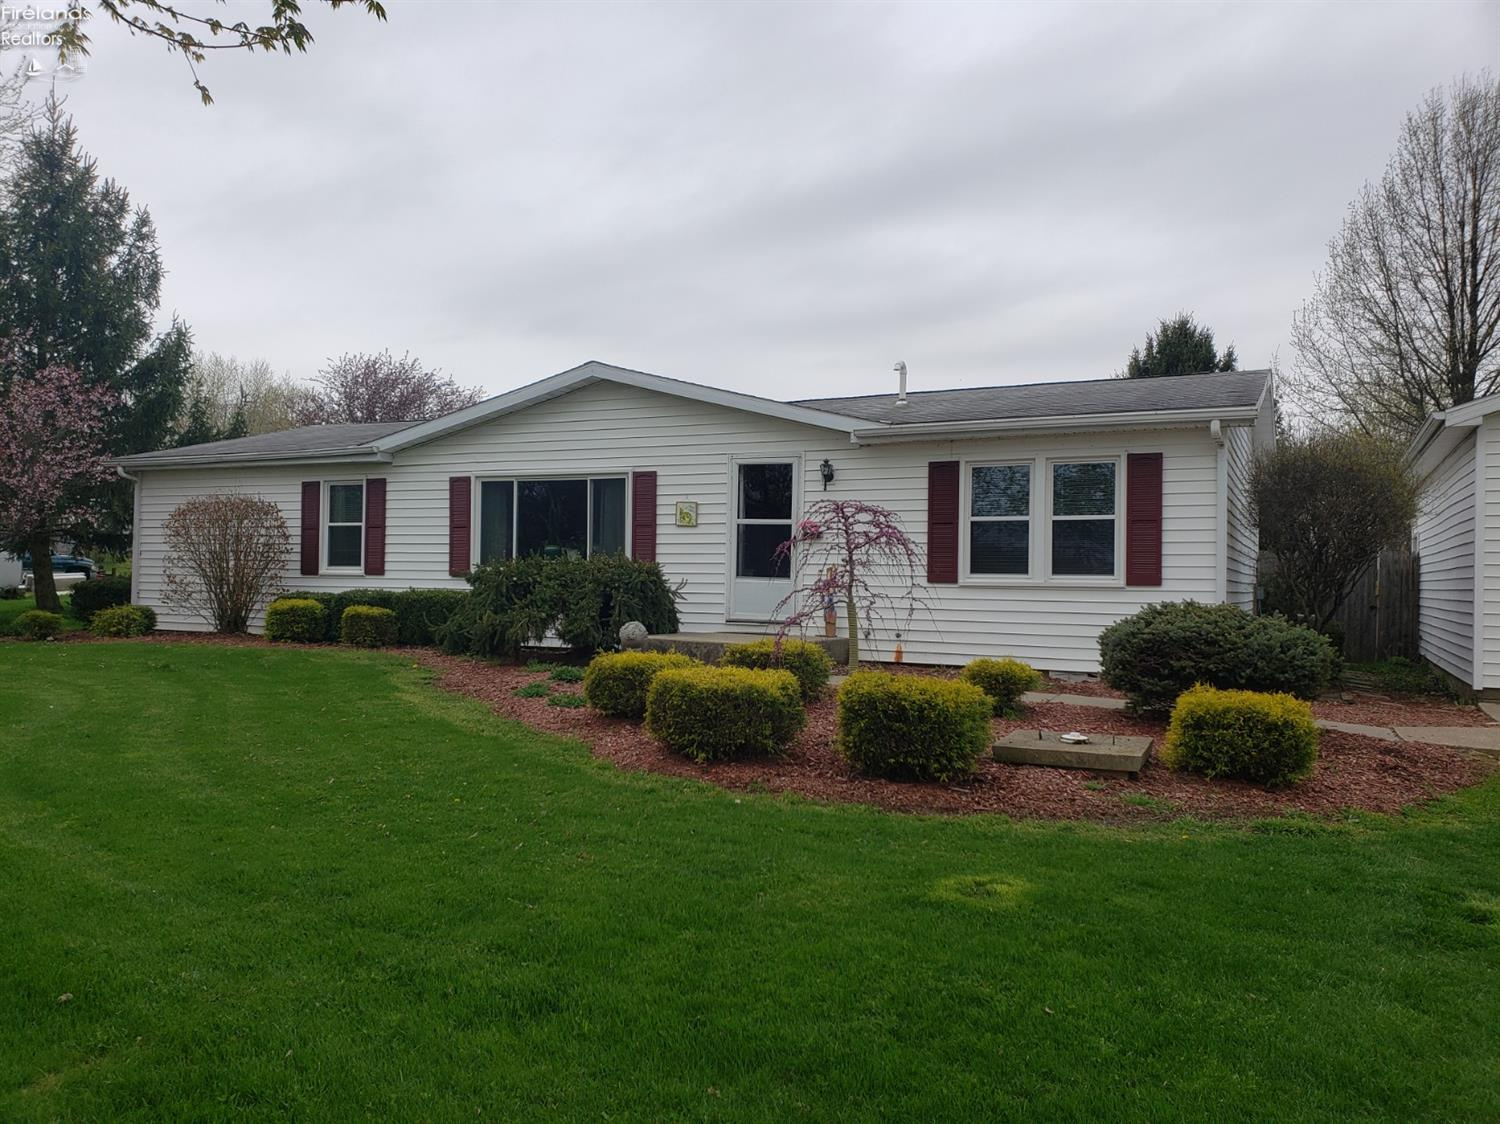 1860 COUNTY ROAD 220, CLYDE, OH 43410